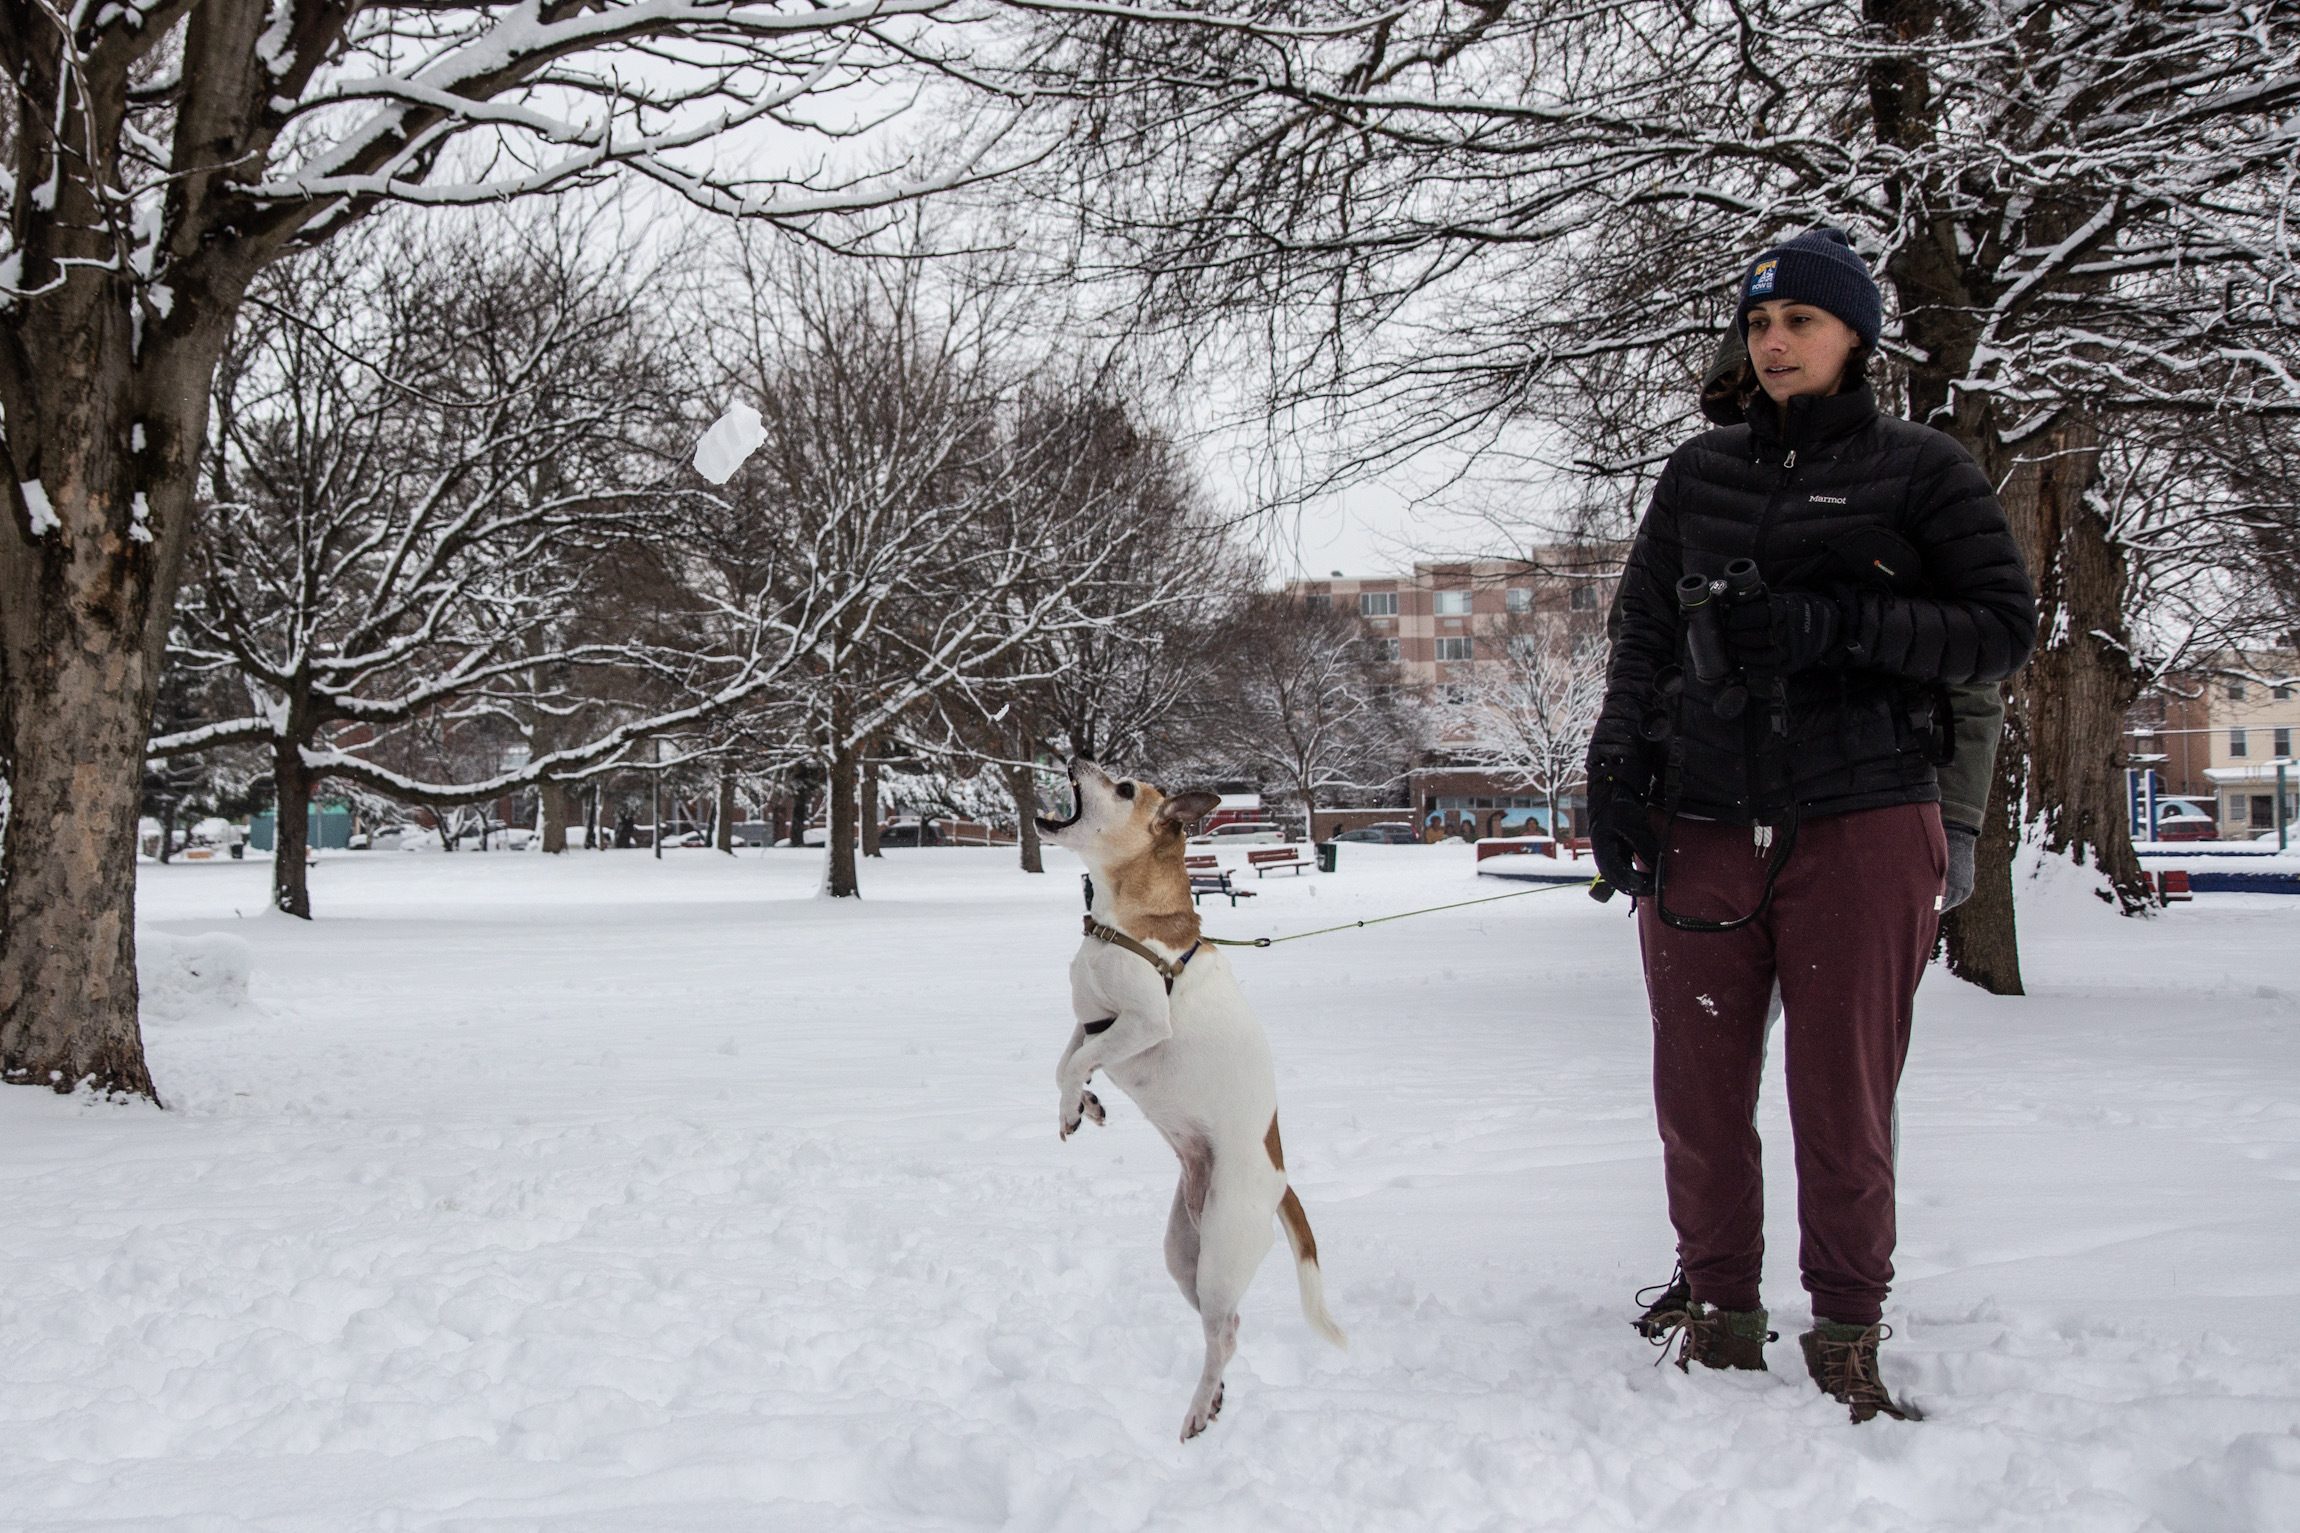 Joey lunges for a snowball at Norris Square Park